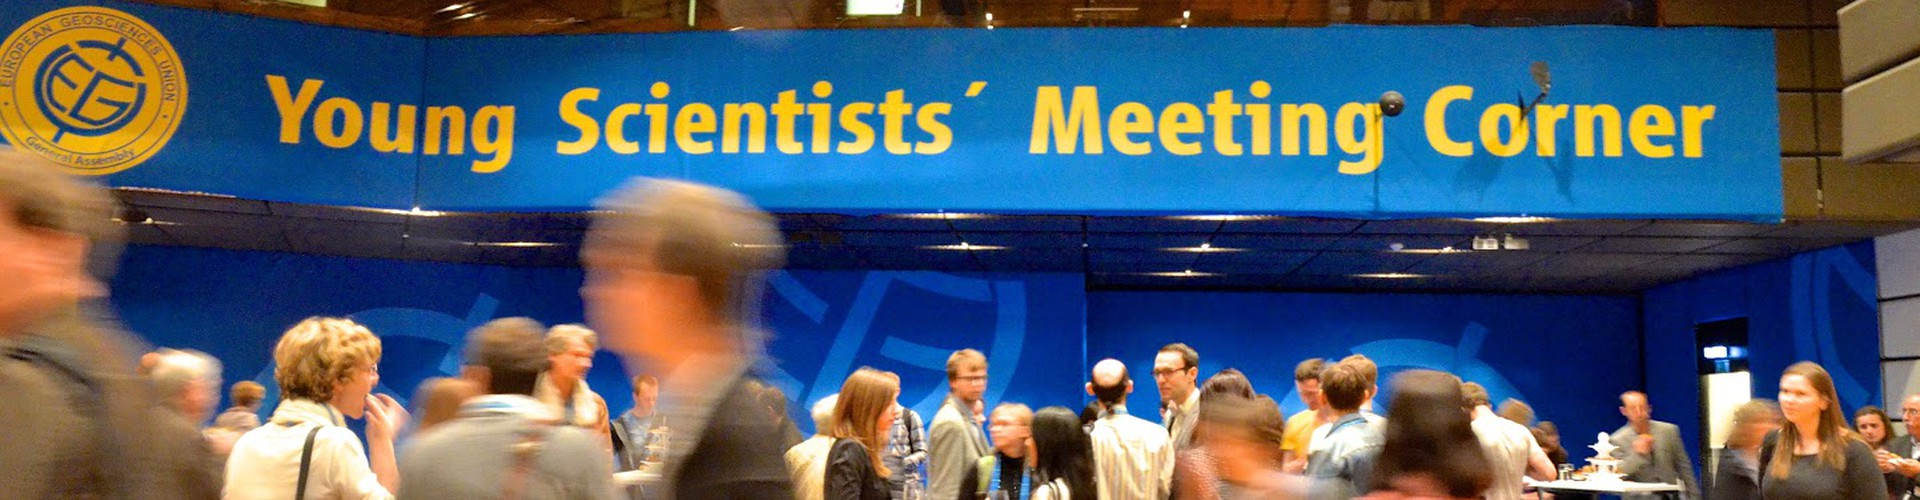 The Young Scientists' Meeting Corner at the EGU 2015 General Assembly will become the Early Career Scientists' Meeting Corner in 2016. (Credit: EGU/Stephanie McClellan)